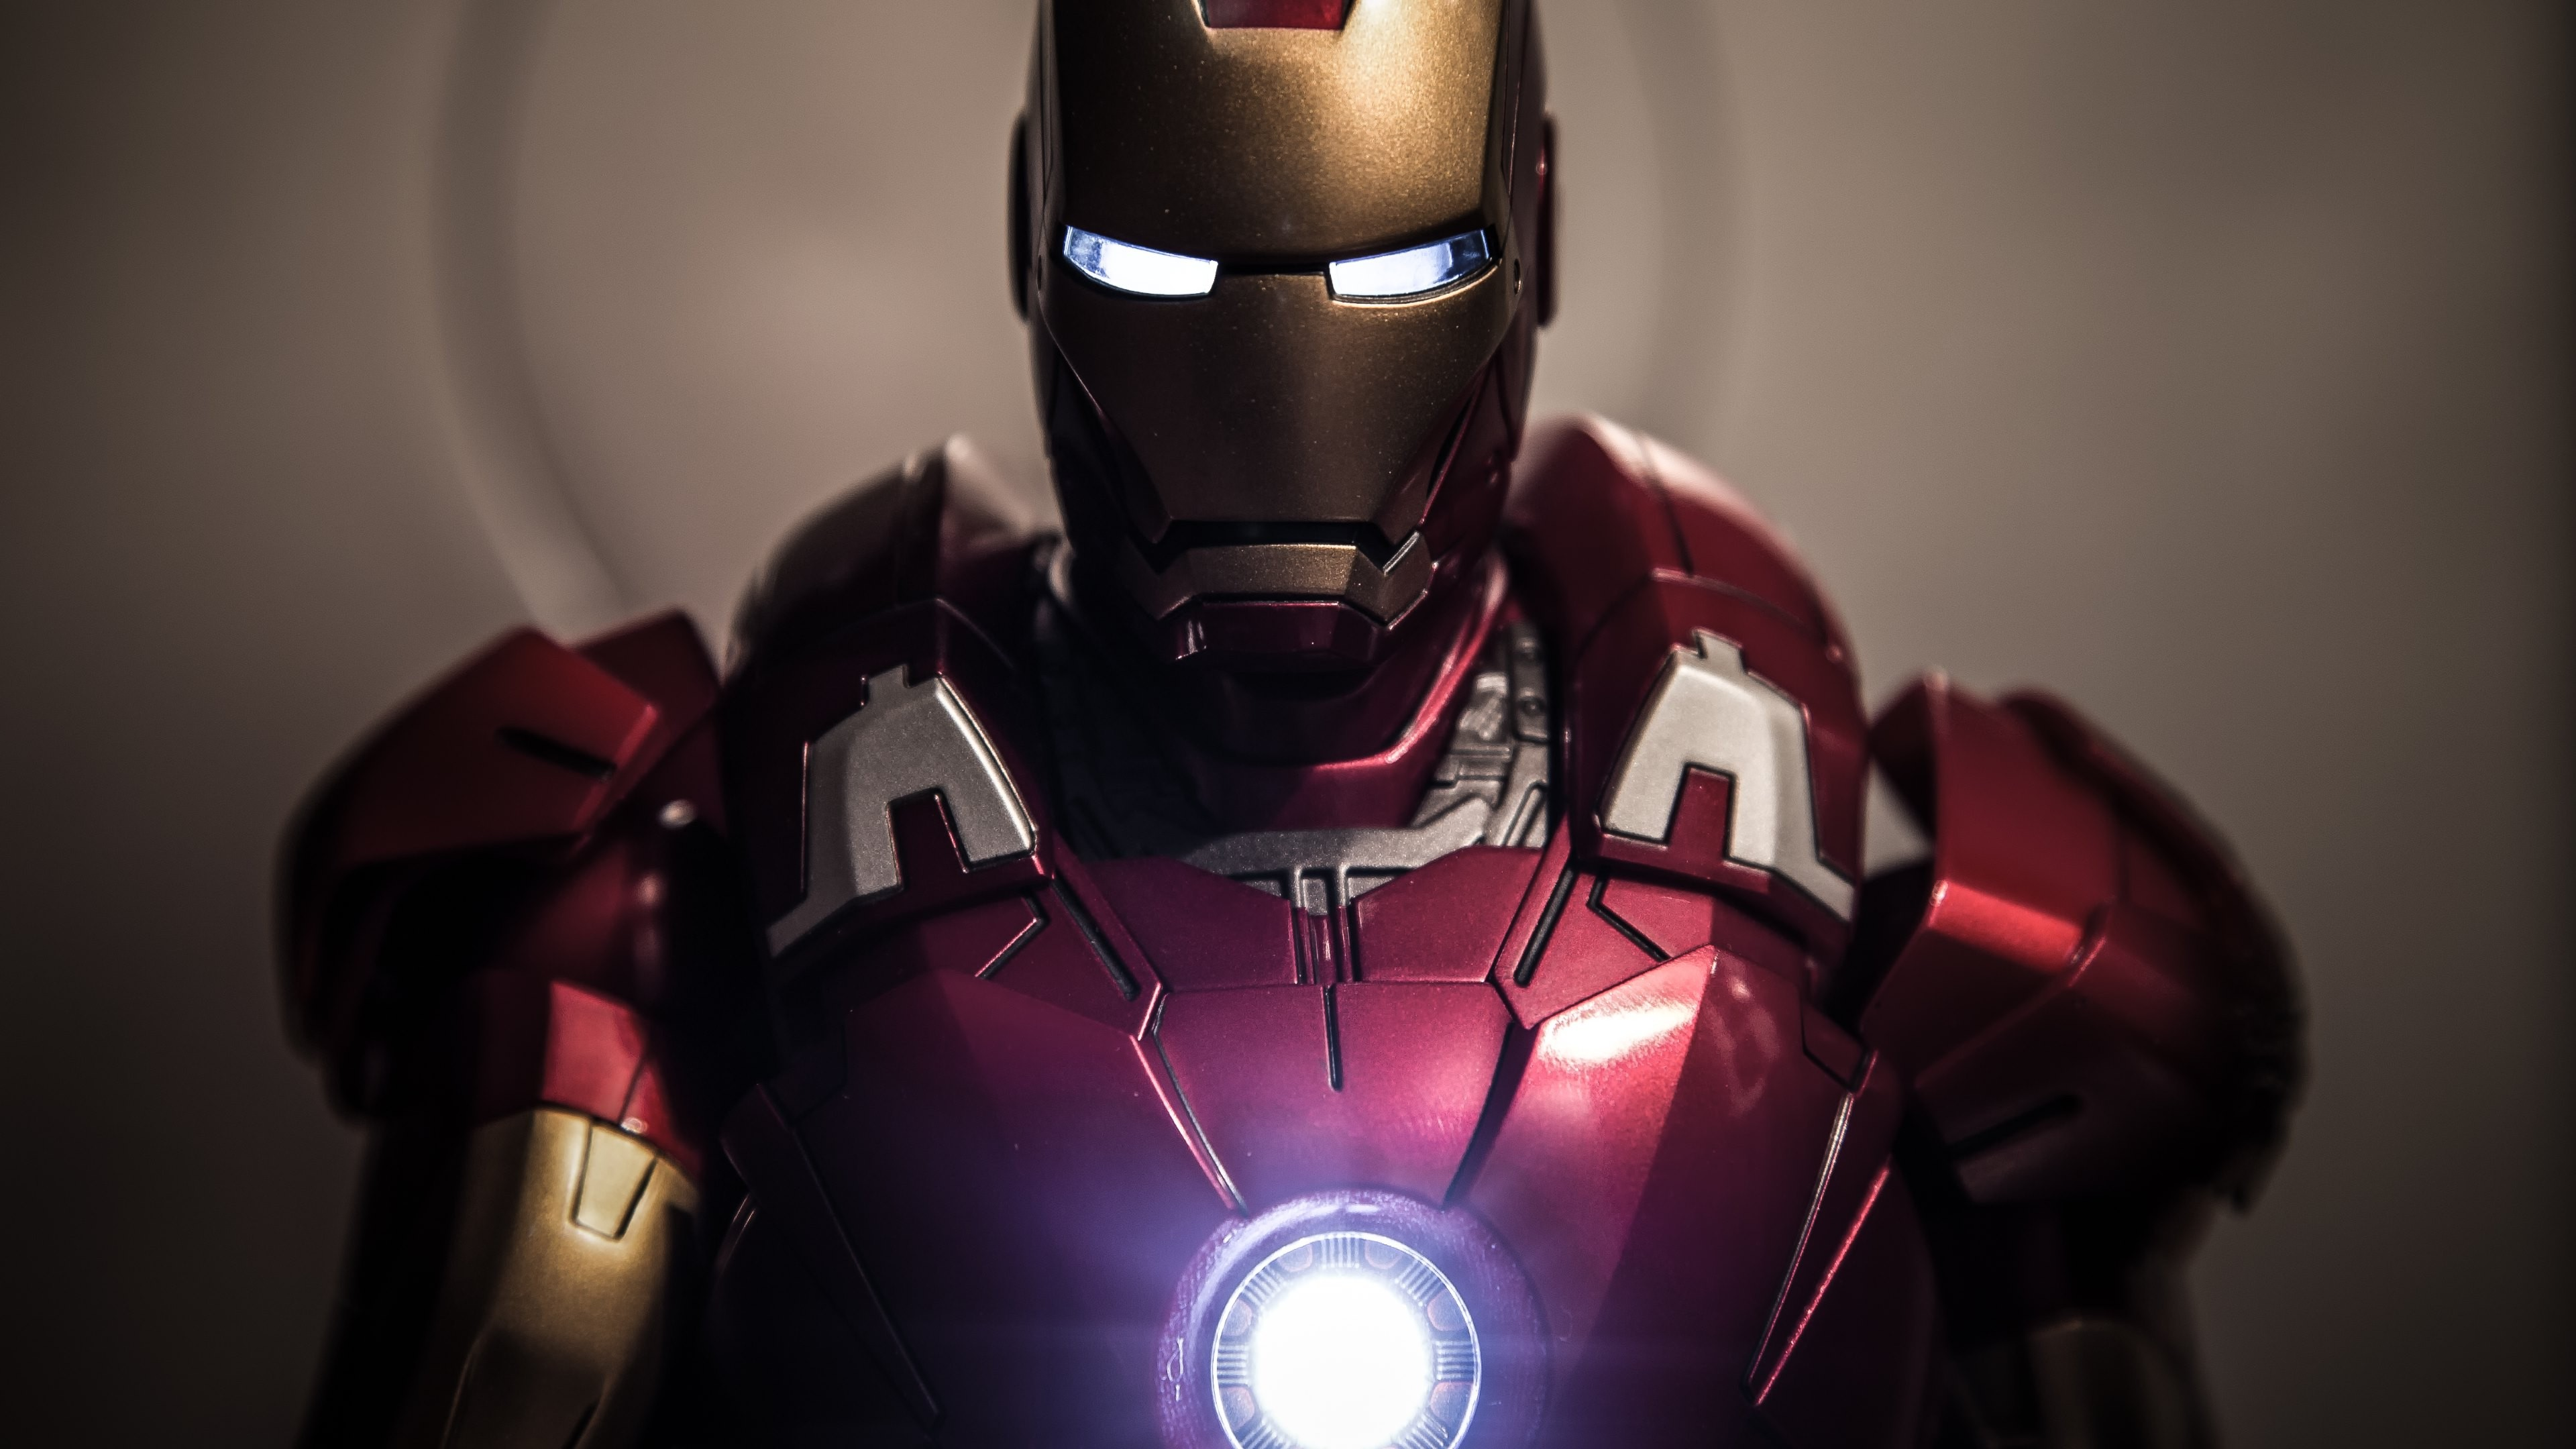 Iron Man Suit Iron Man Suit 4k 74469 Hd Wallpaper Backgrounds Download